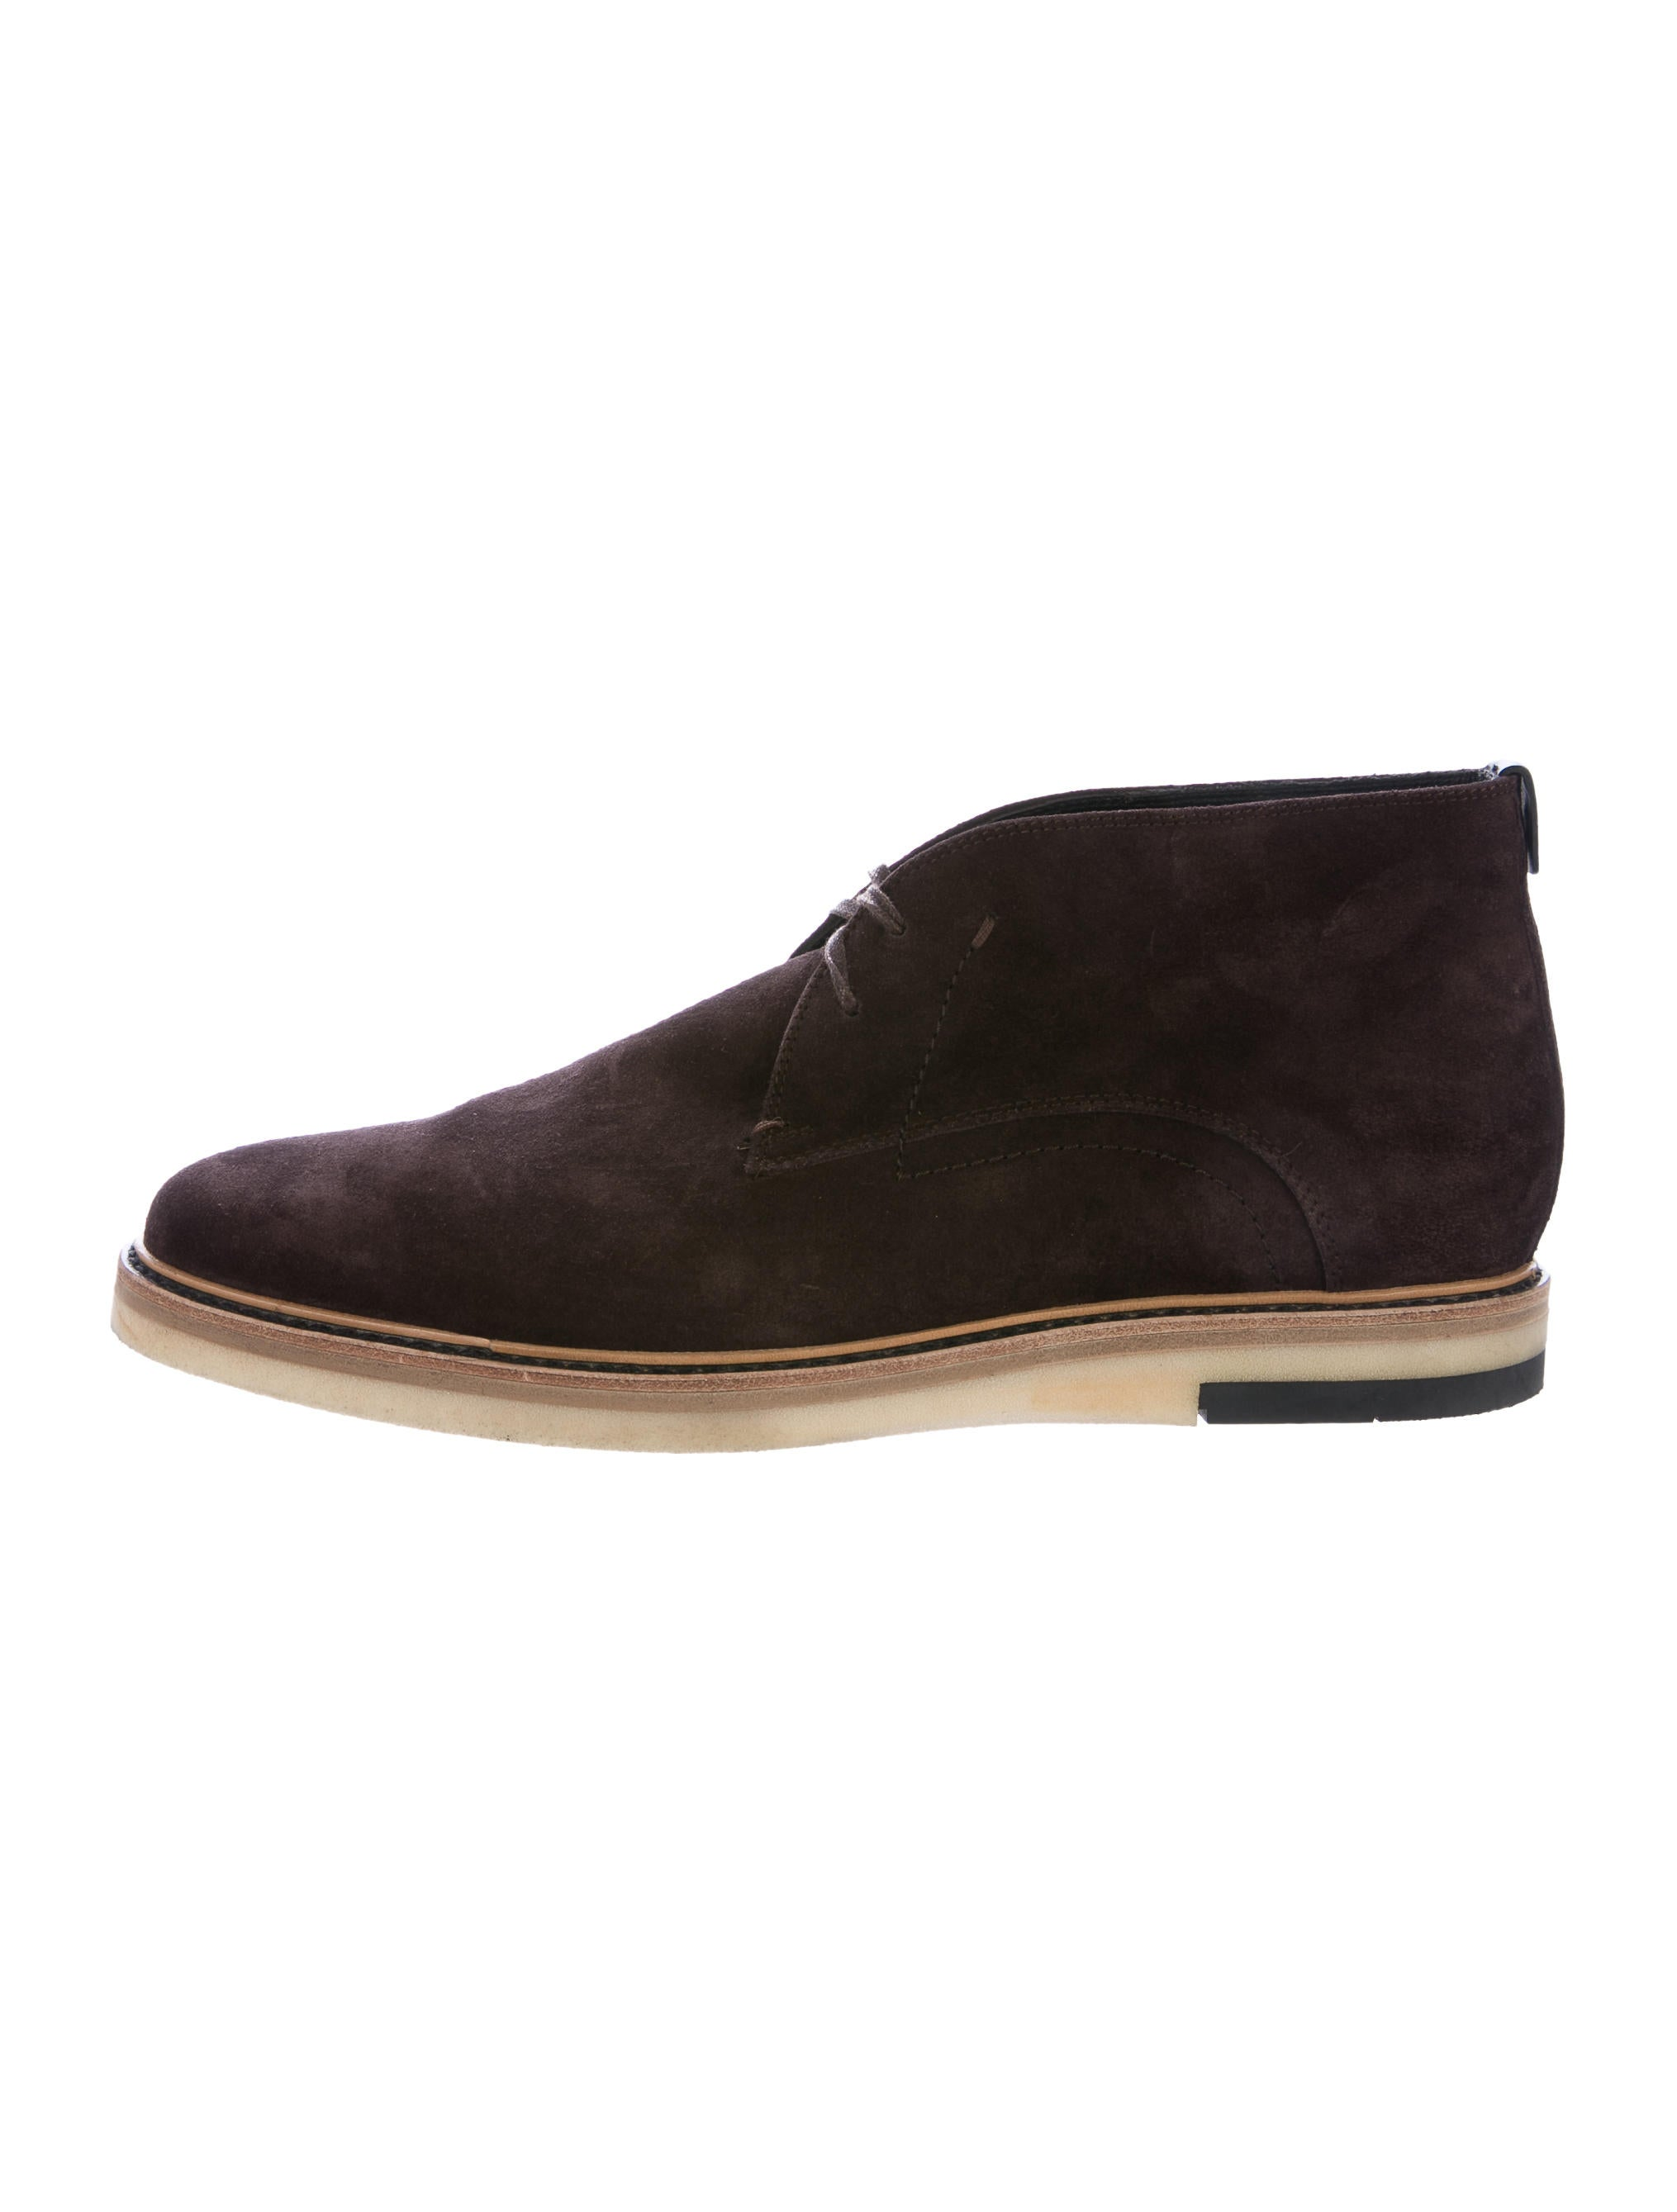 desire-date.tk Suede Chukka Boots This NPS desire-date.tk Brown Suede Chukka boot uses the specialised Goodyear welted construction method with a leather sole and heel. The boots come in a black handmade box embossed with the NPS logo in gold foil.